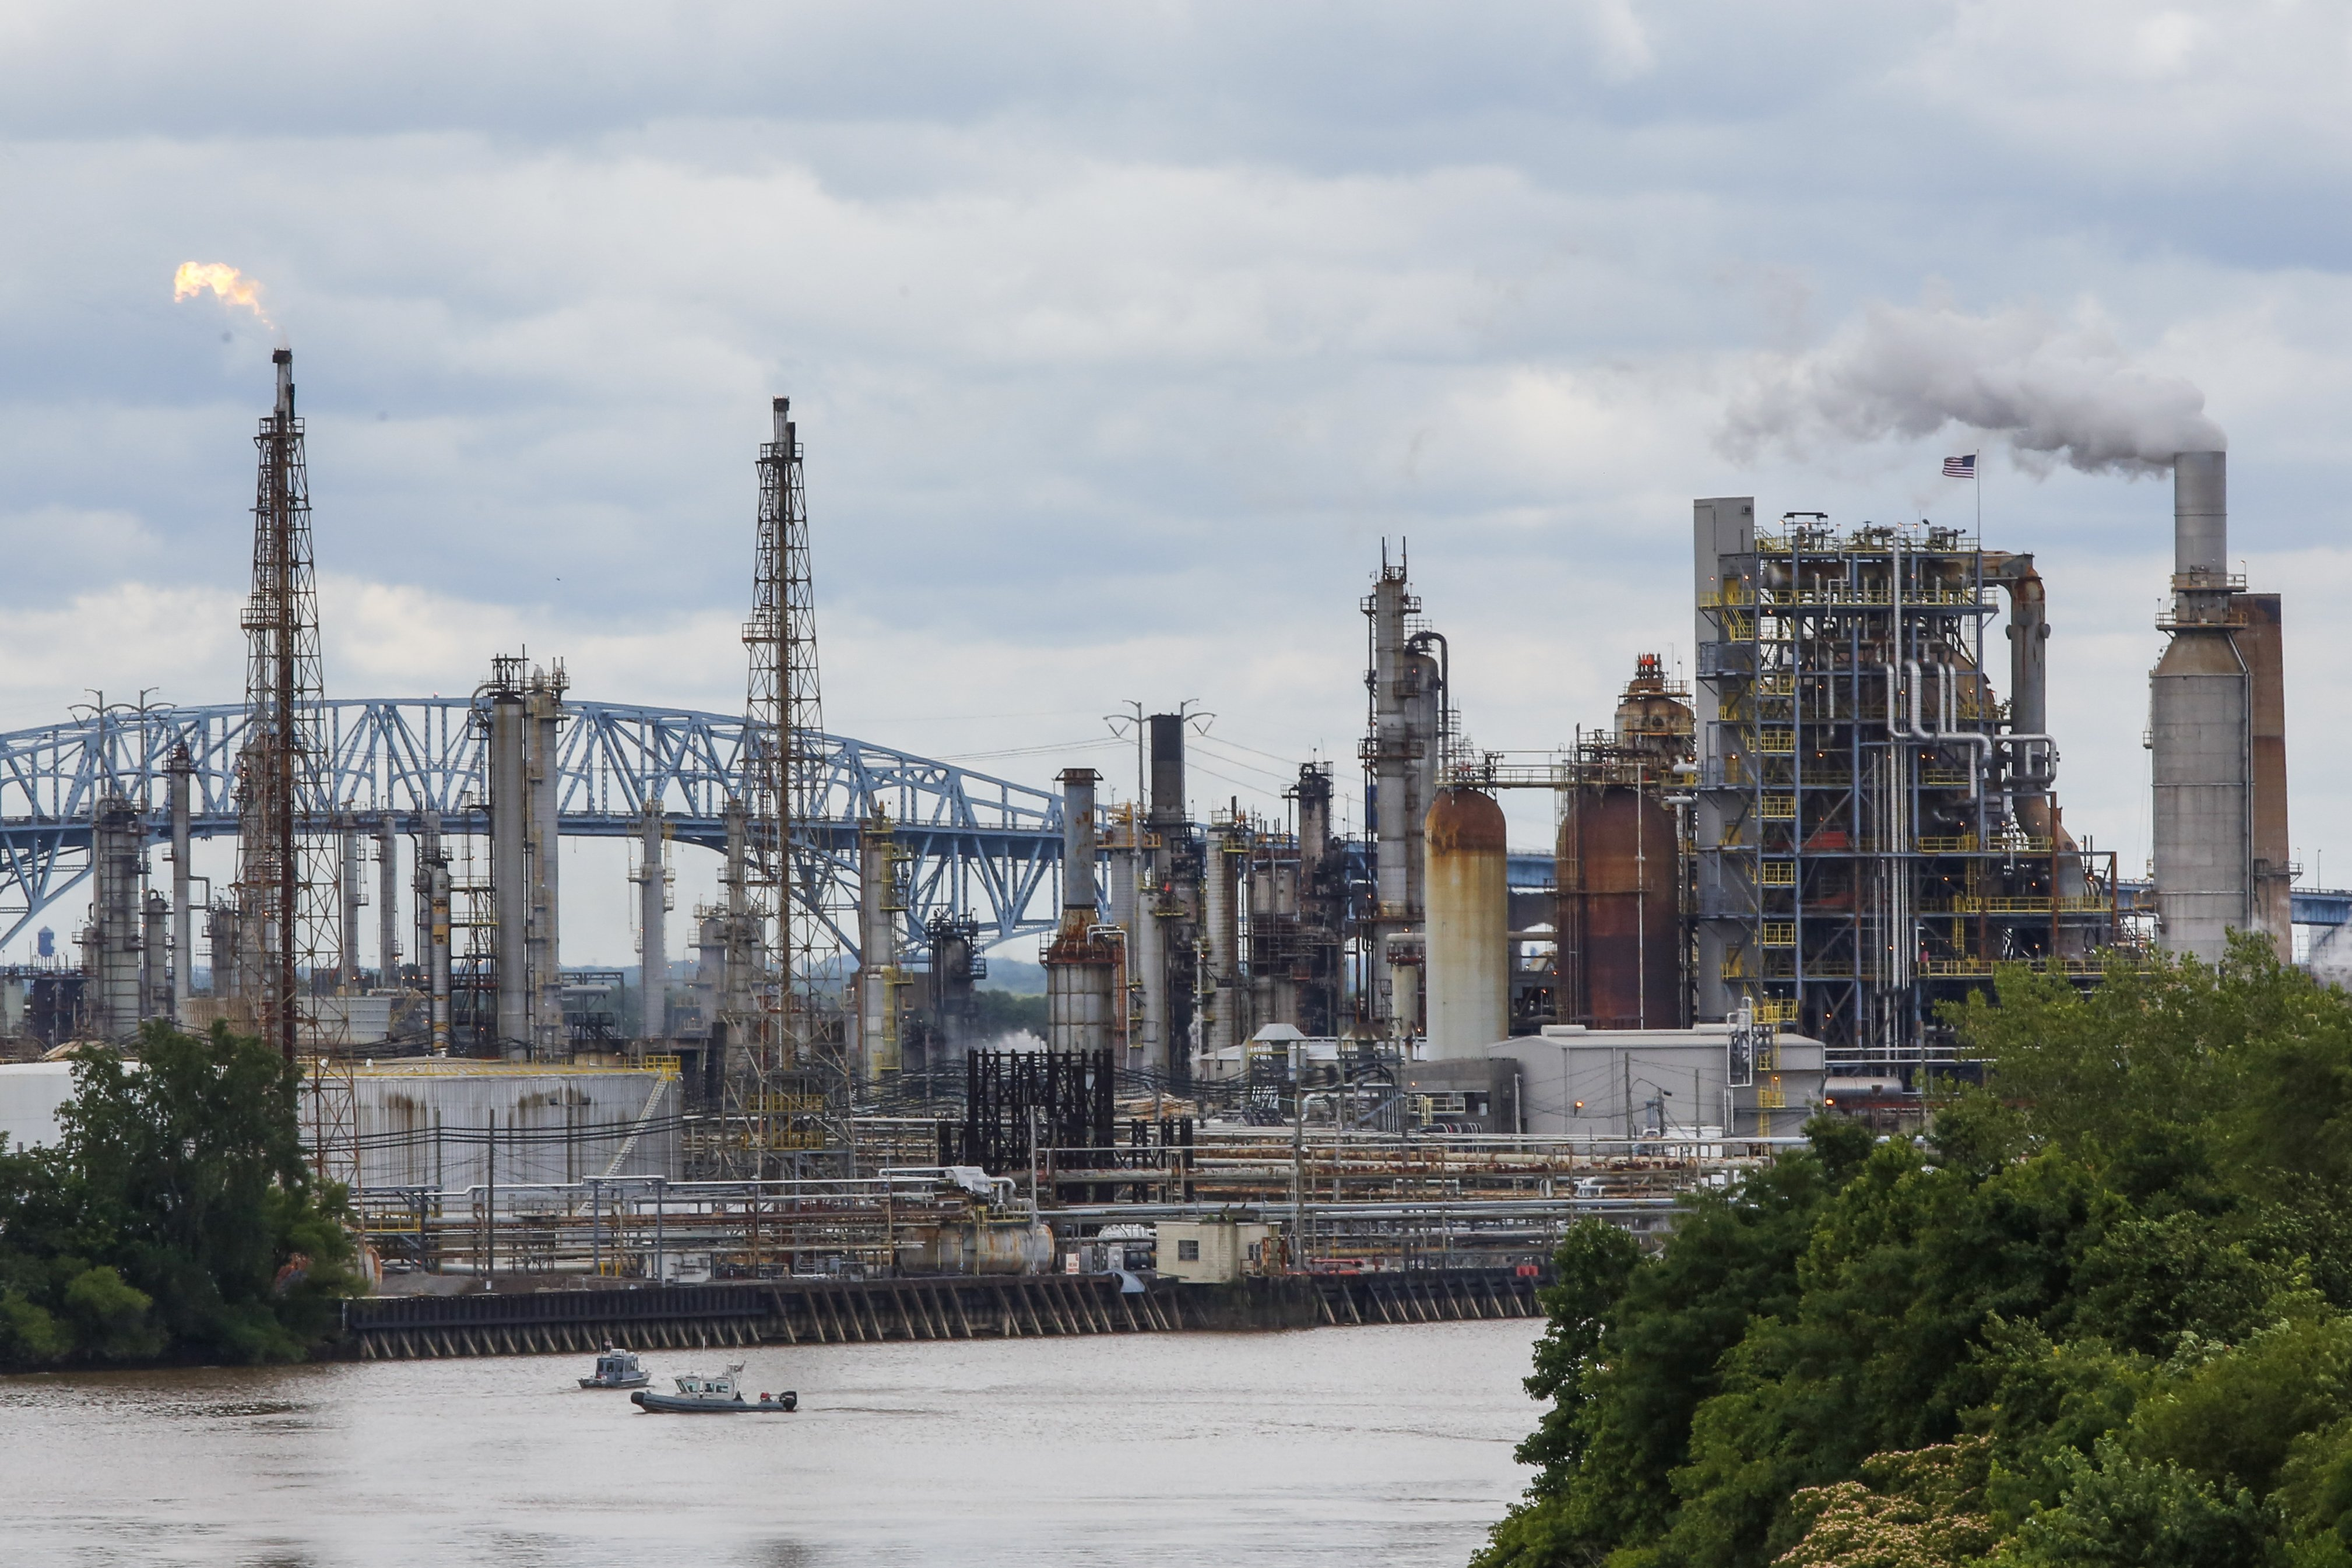 Philadelphia refinery goes bankrupt after fire. It's the second bankruptcy in 1.5 years